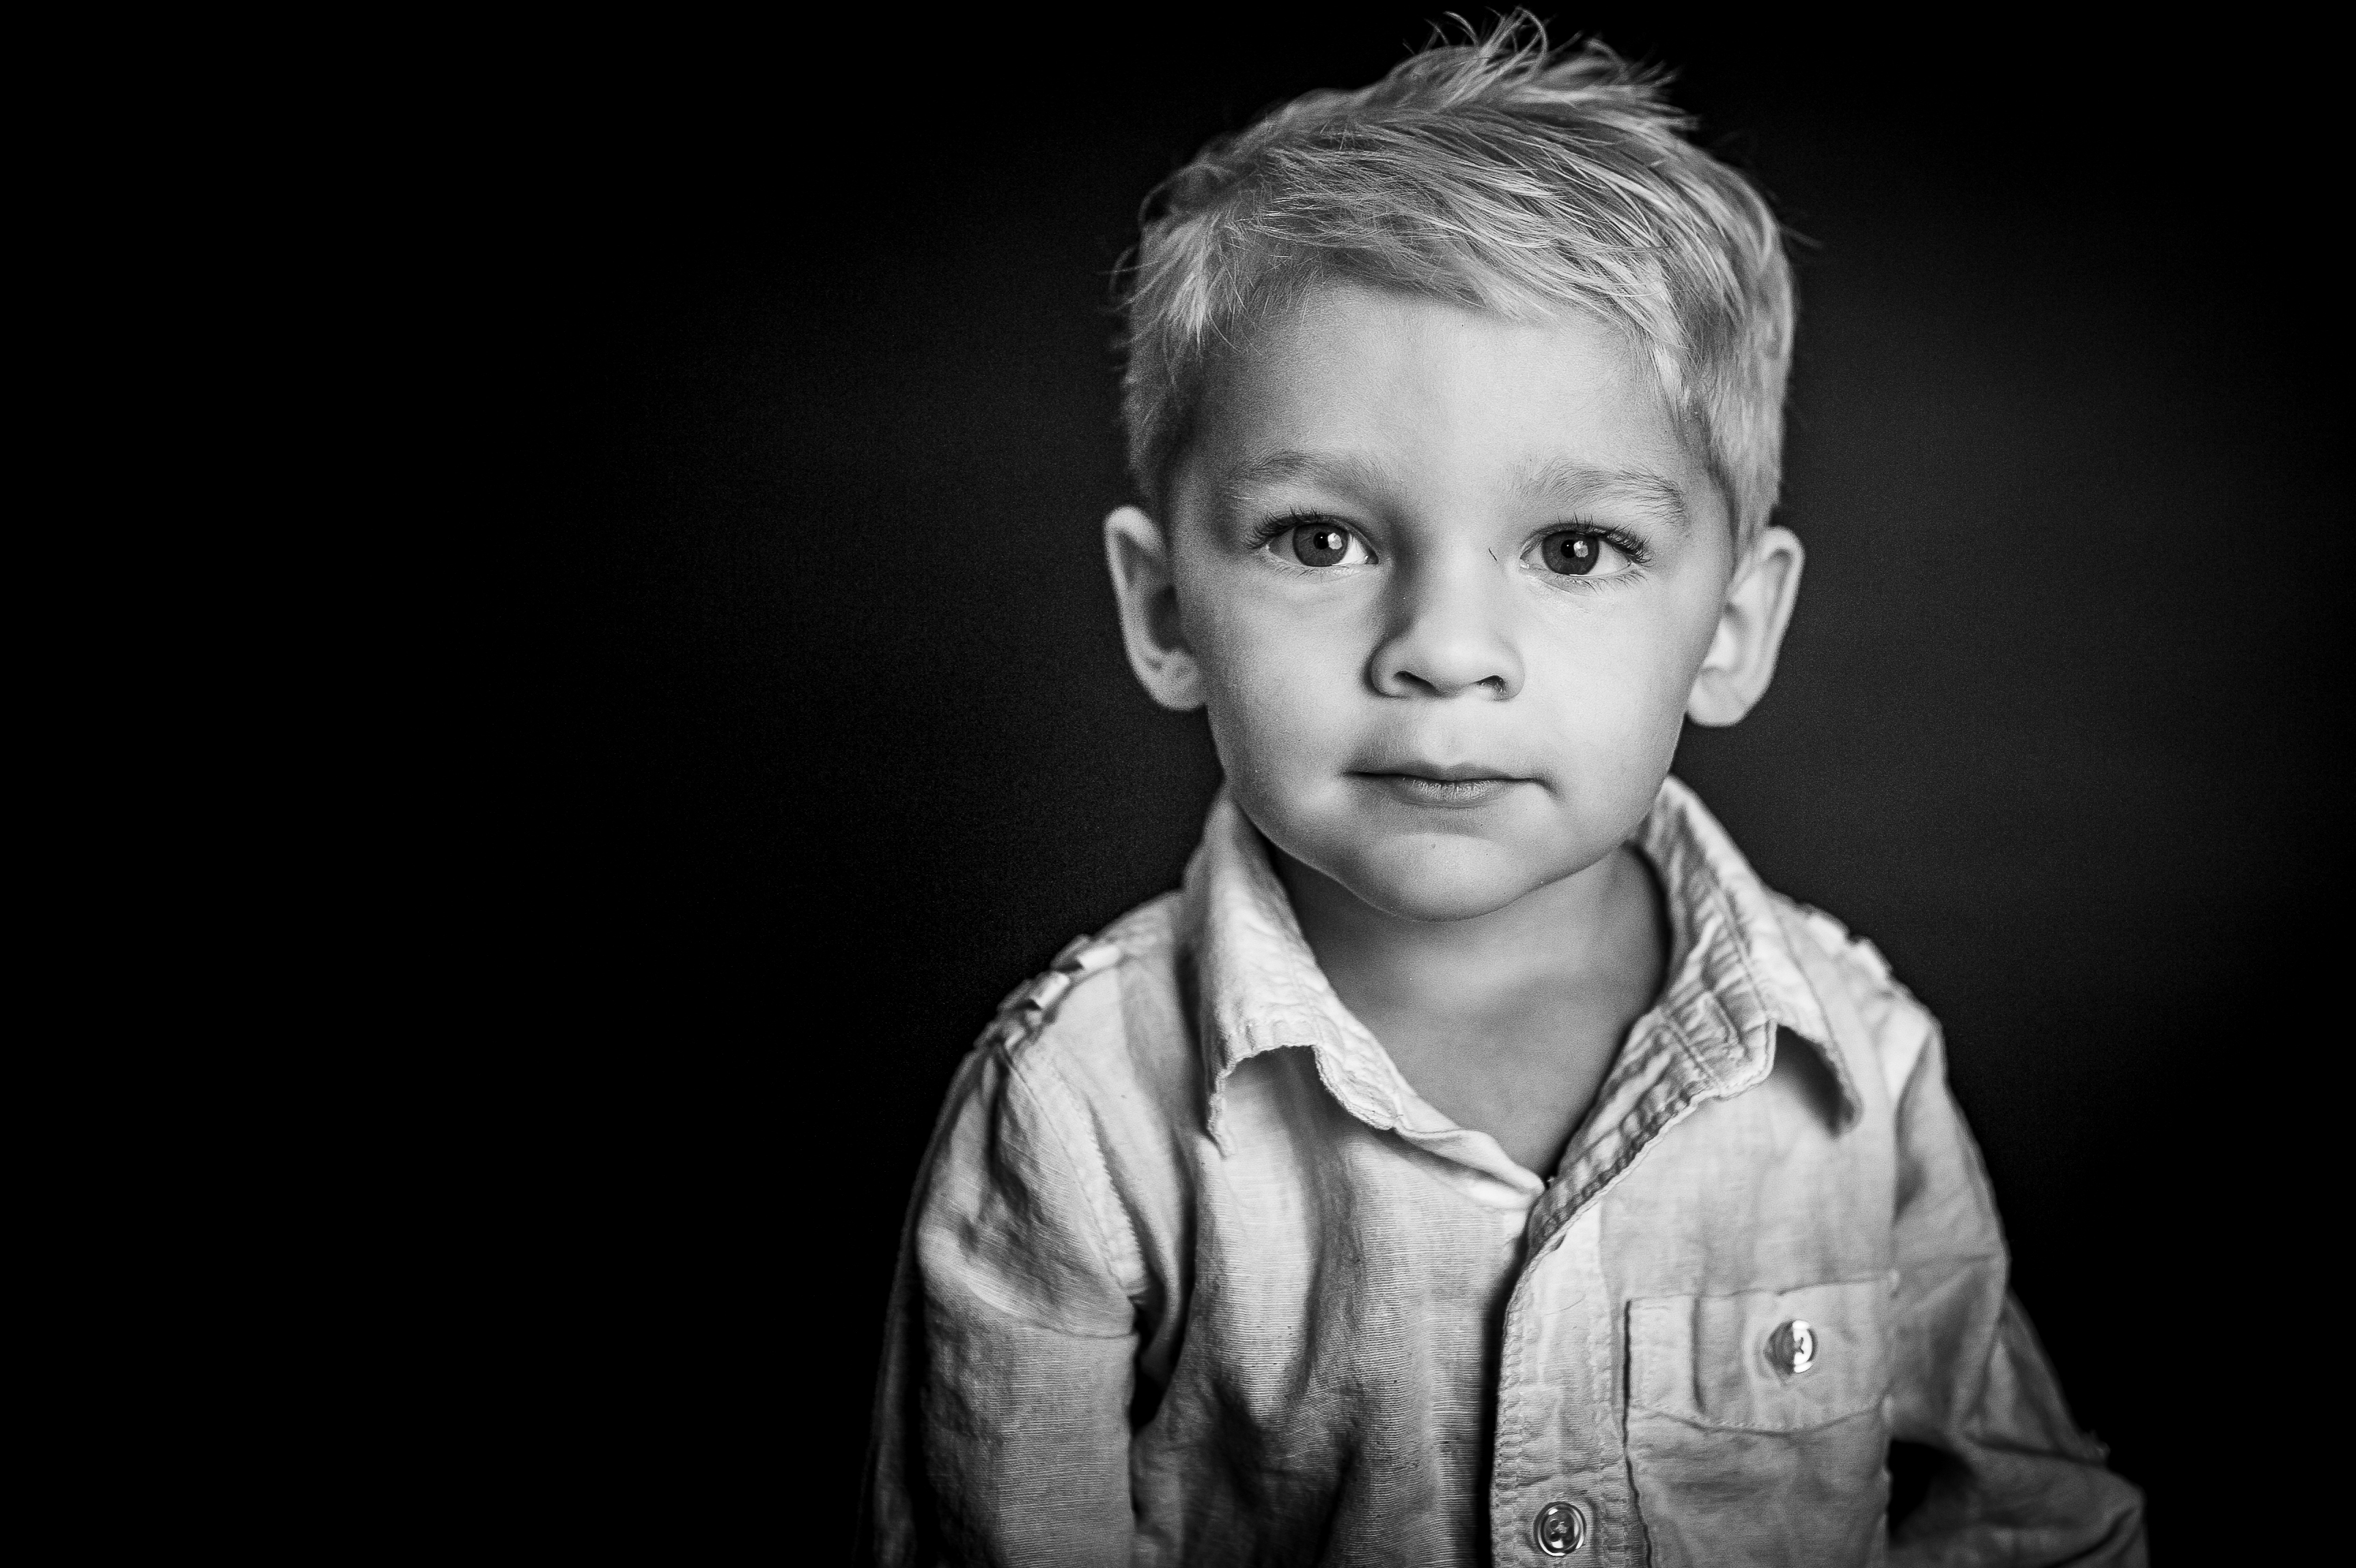 blonde boy with serious face